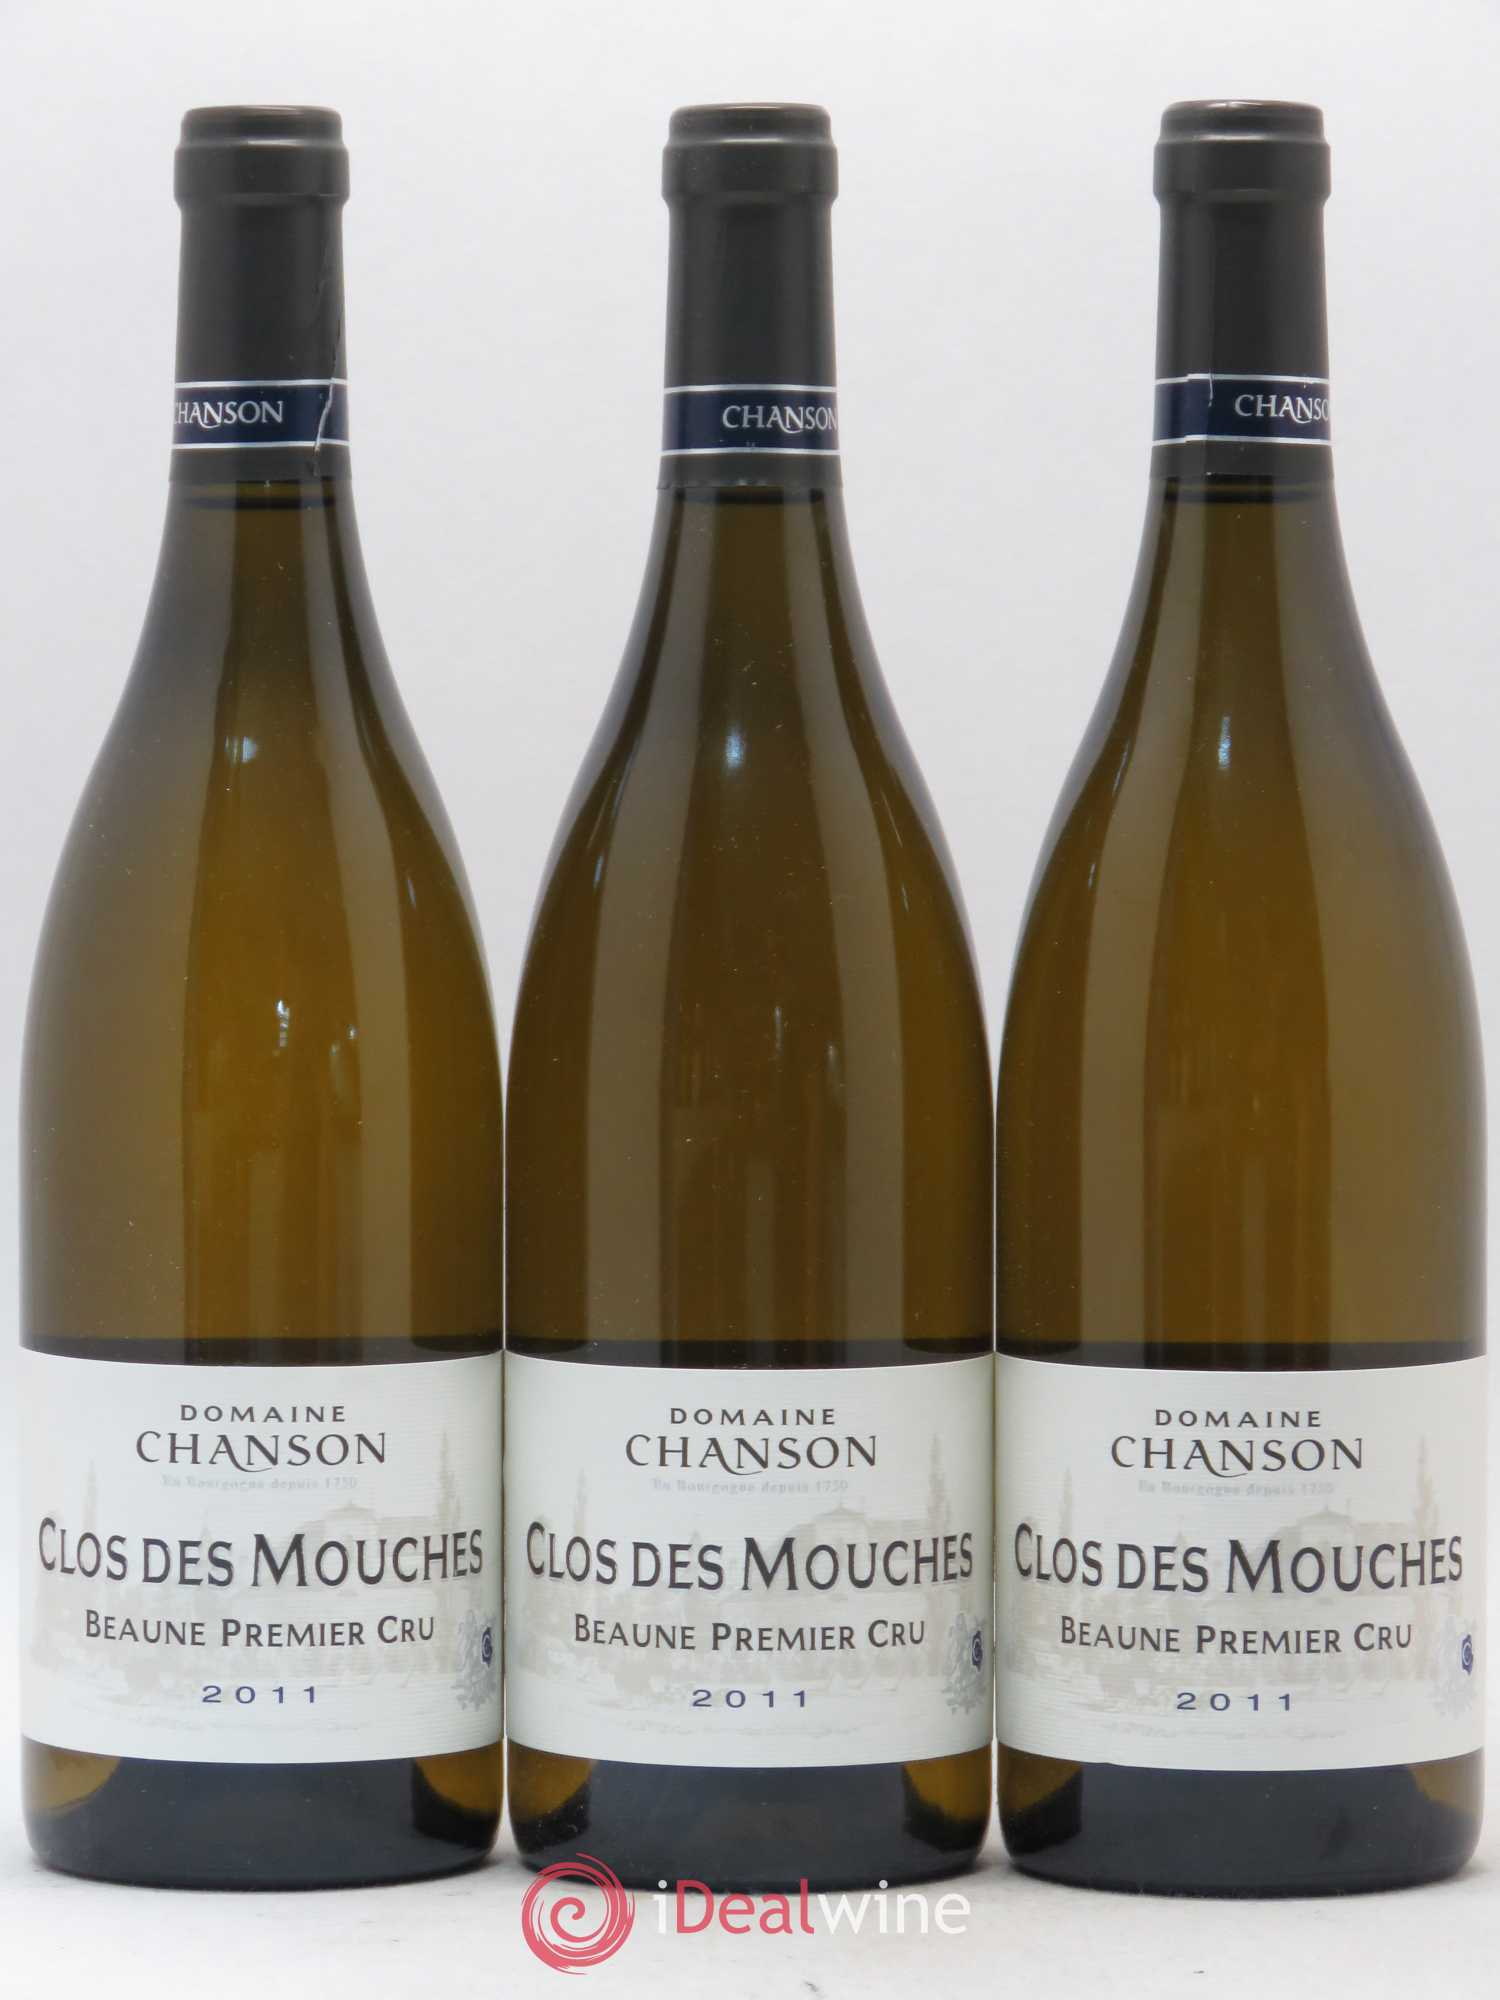 Beaune 1er Cru Clos des Mouches Chanson (no reserve) 2011 - Lot of 3 Bottles